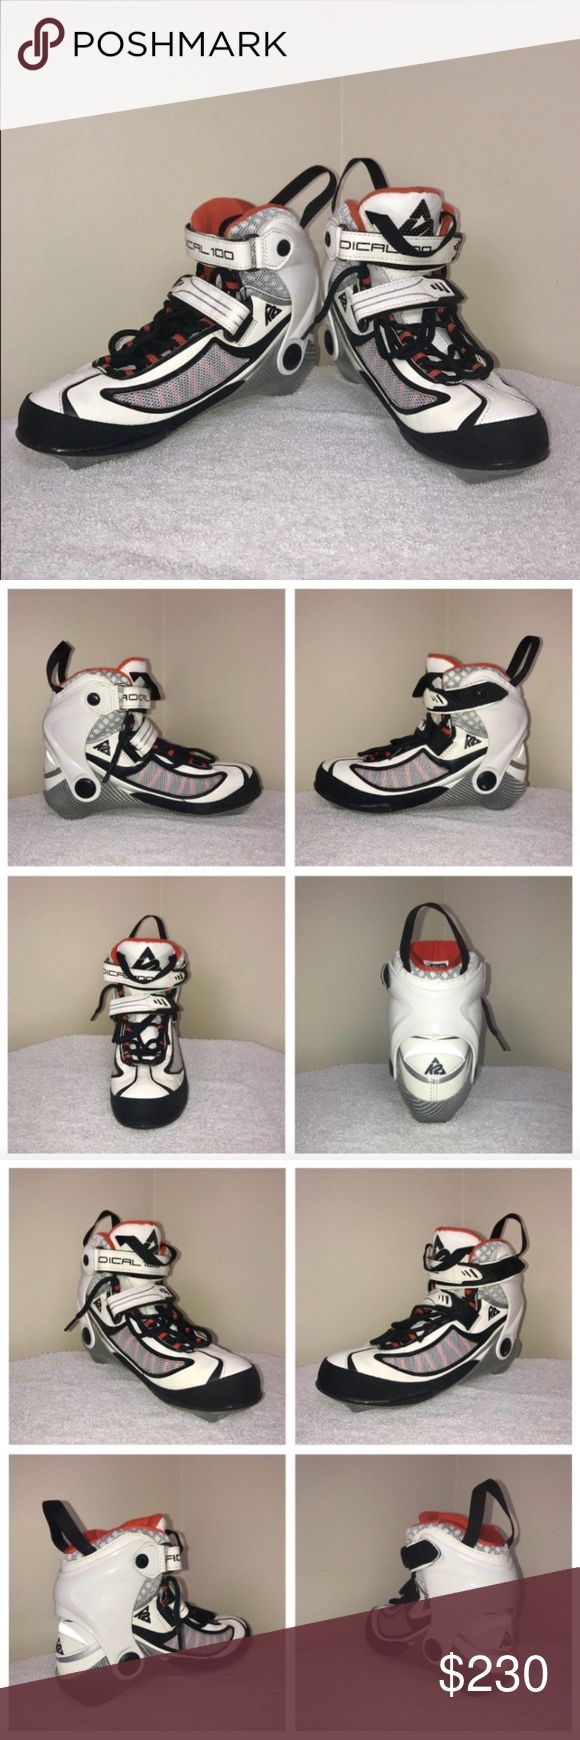 K2 Radical 100 Marathon Inline Speed Skates Sz 7.5 Radical 100 W Inline Skate size 7.5 US women. Wheels are not included.   The Radical 100 W is viewed as the model that has defined what advanced, to expert big-wheeled inline skates are supposed to be; light-weight, fast and stable. The Radical has earned its excellent dampening and light weight properties thanks to its fiberglass base.   Lacing: Traditional Skate Cuff: Radical Colors: White Silver Orange Size: 7.5 US Women Retail: $450…